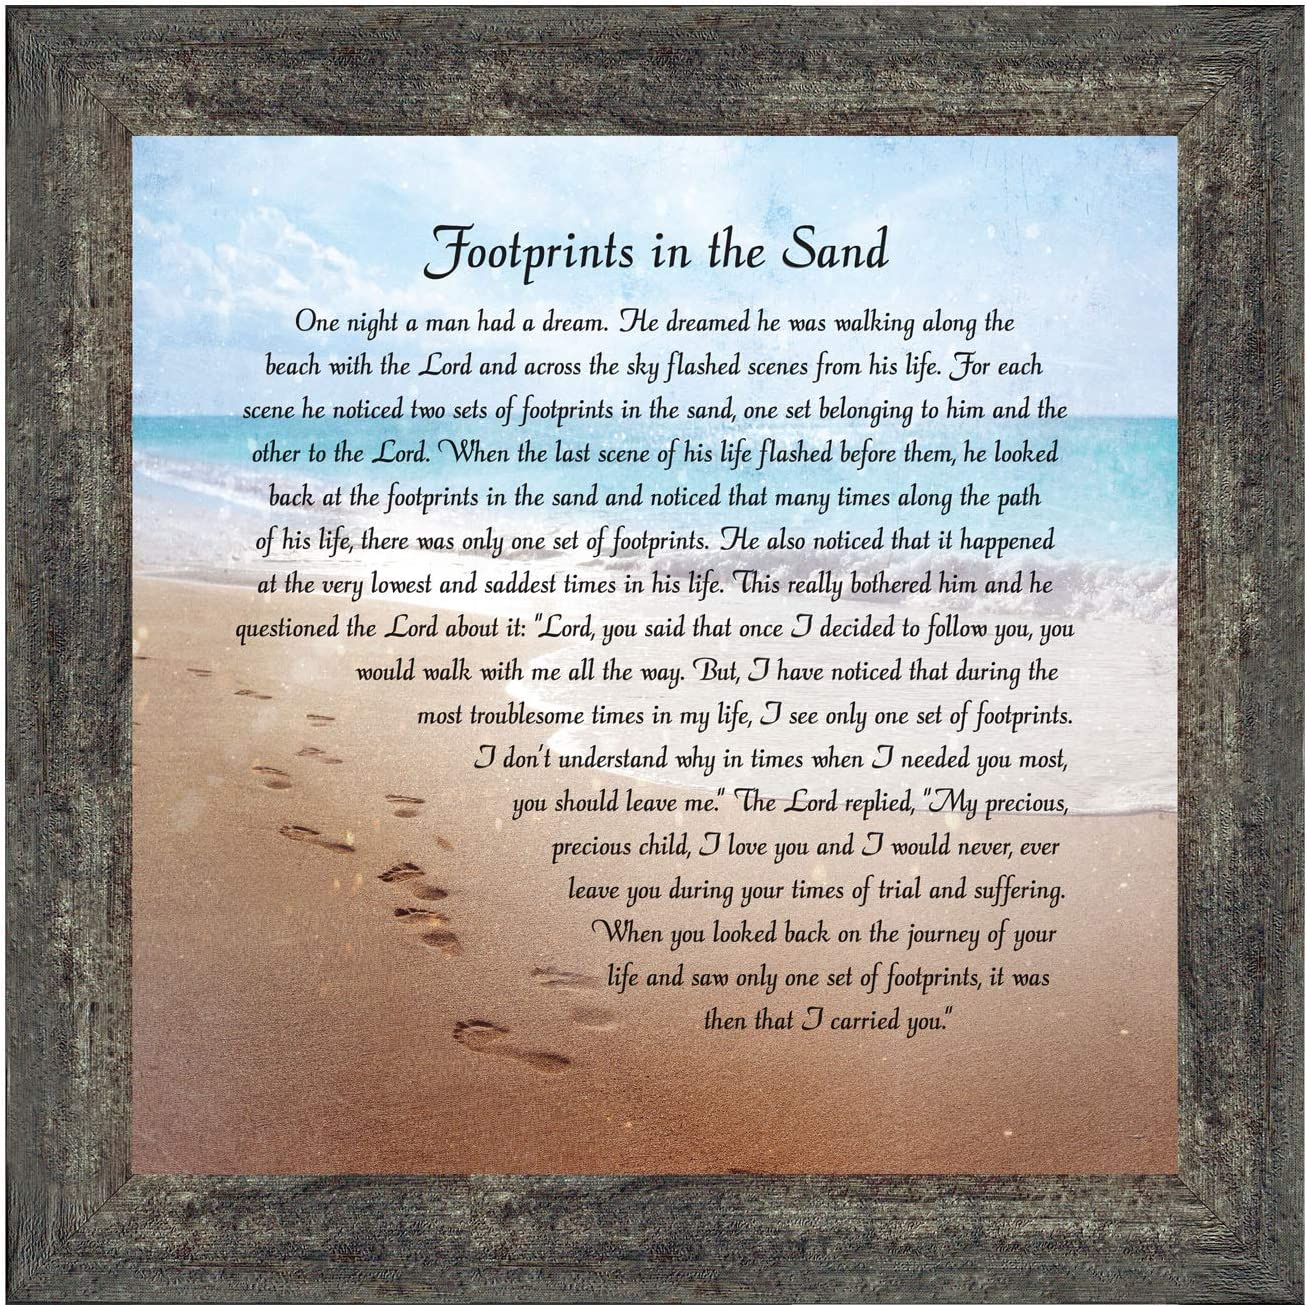 Footprints in The Sand Inspirational Wall Art, Beach Decor, Christian Gifts for Women and Men, Christian Wall Decor, Get Well Soon, Encouraging Scripture Wall Art, Framed Sympathy Gift 8639BW